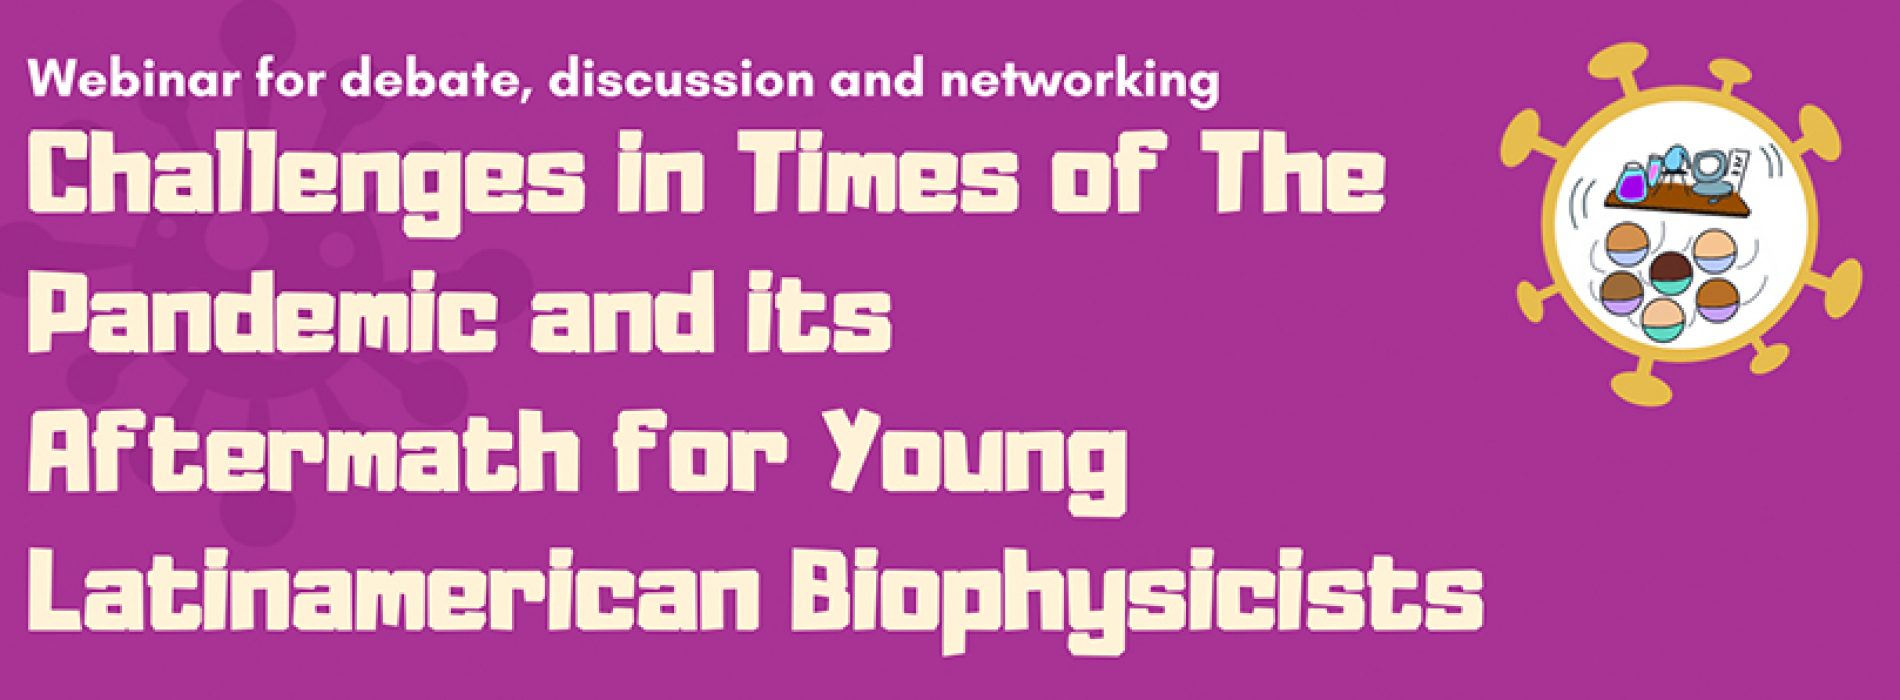 BPS Virtual Networking Event for Young Latin American Biophysicists